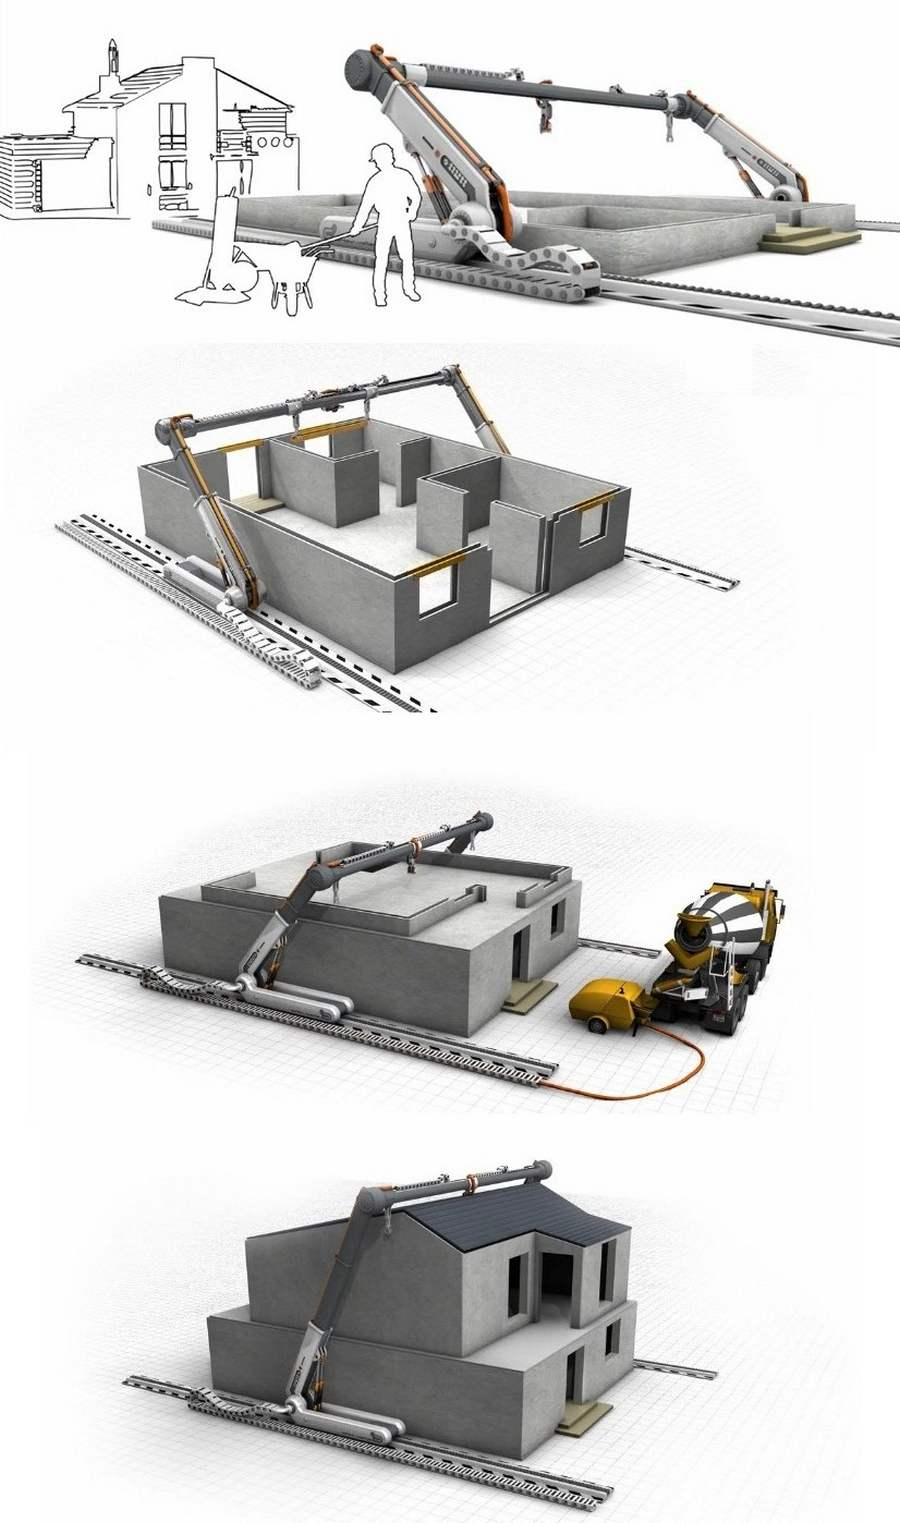 3D Print your own house (6)